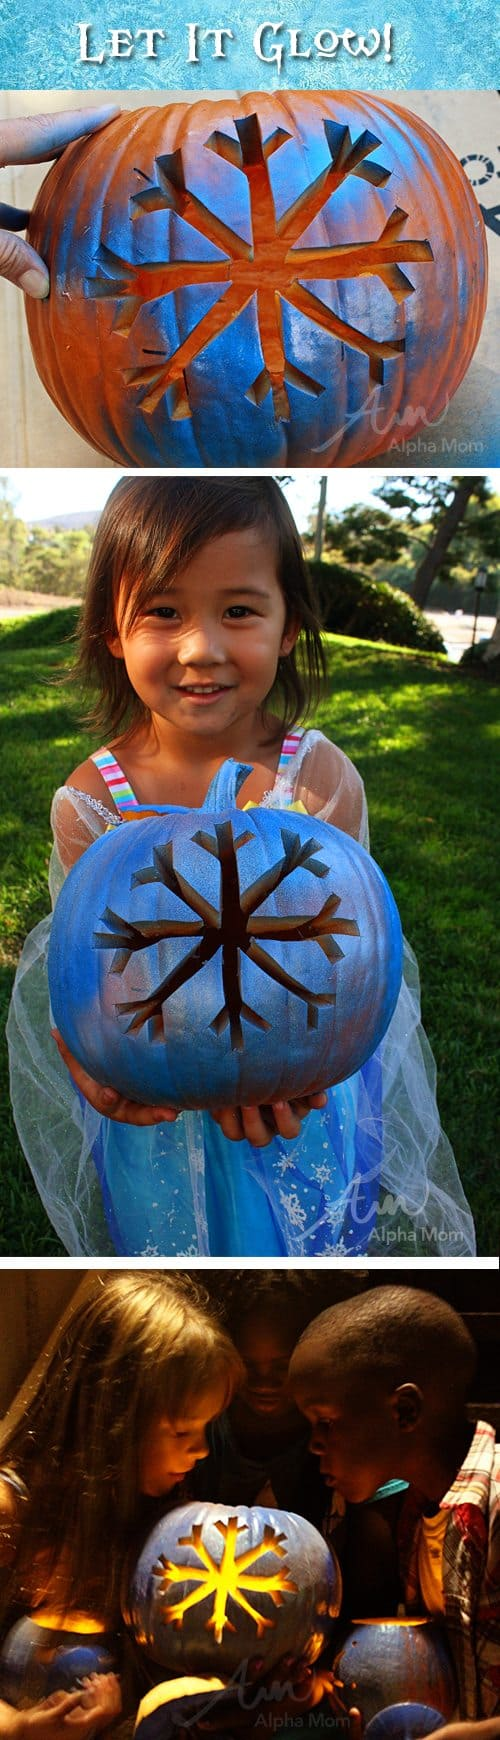 Let It Glow! Frozen-themed Jack o'Lanterns by Brenda Ponnay for Alphamom.com #pumpkins #Frozen